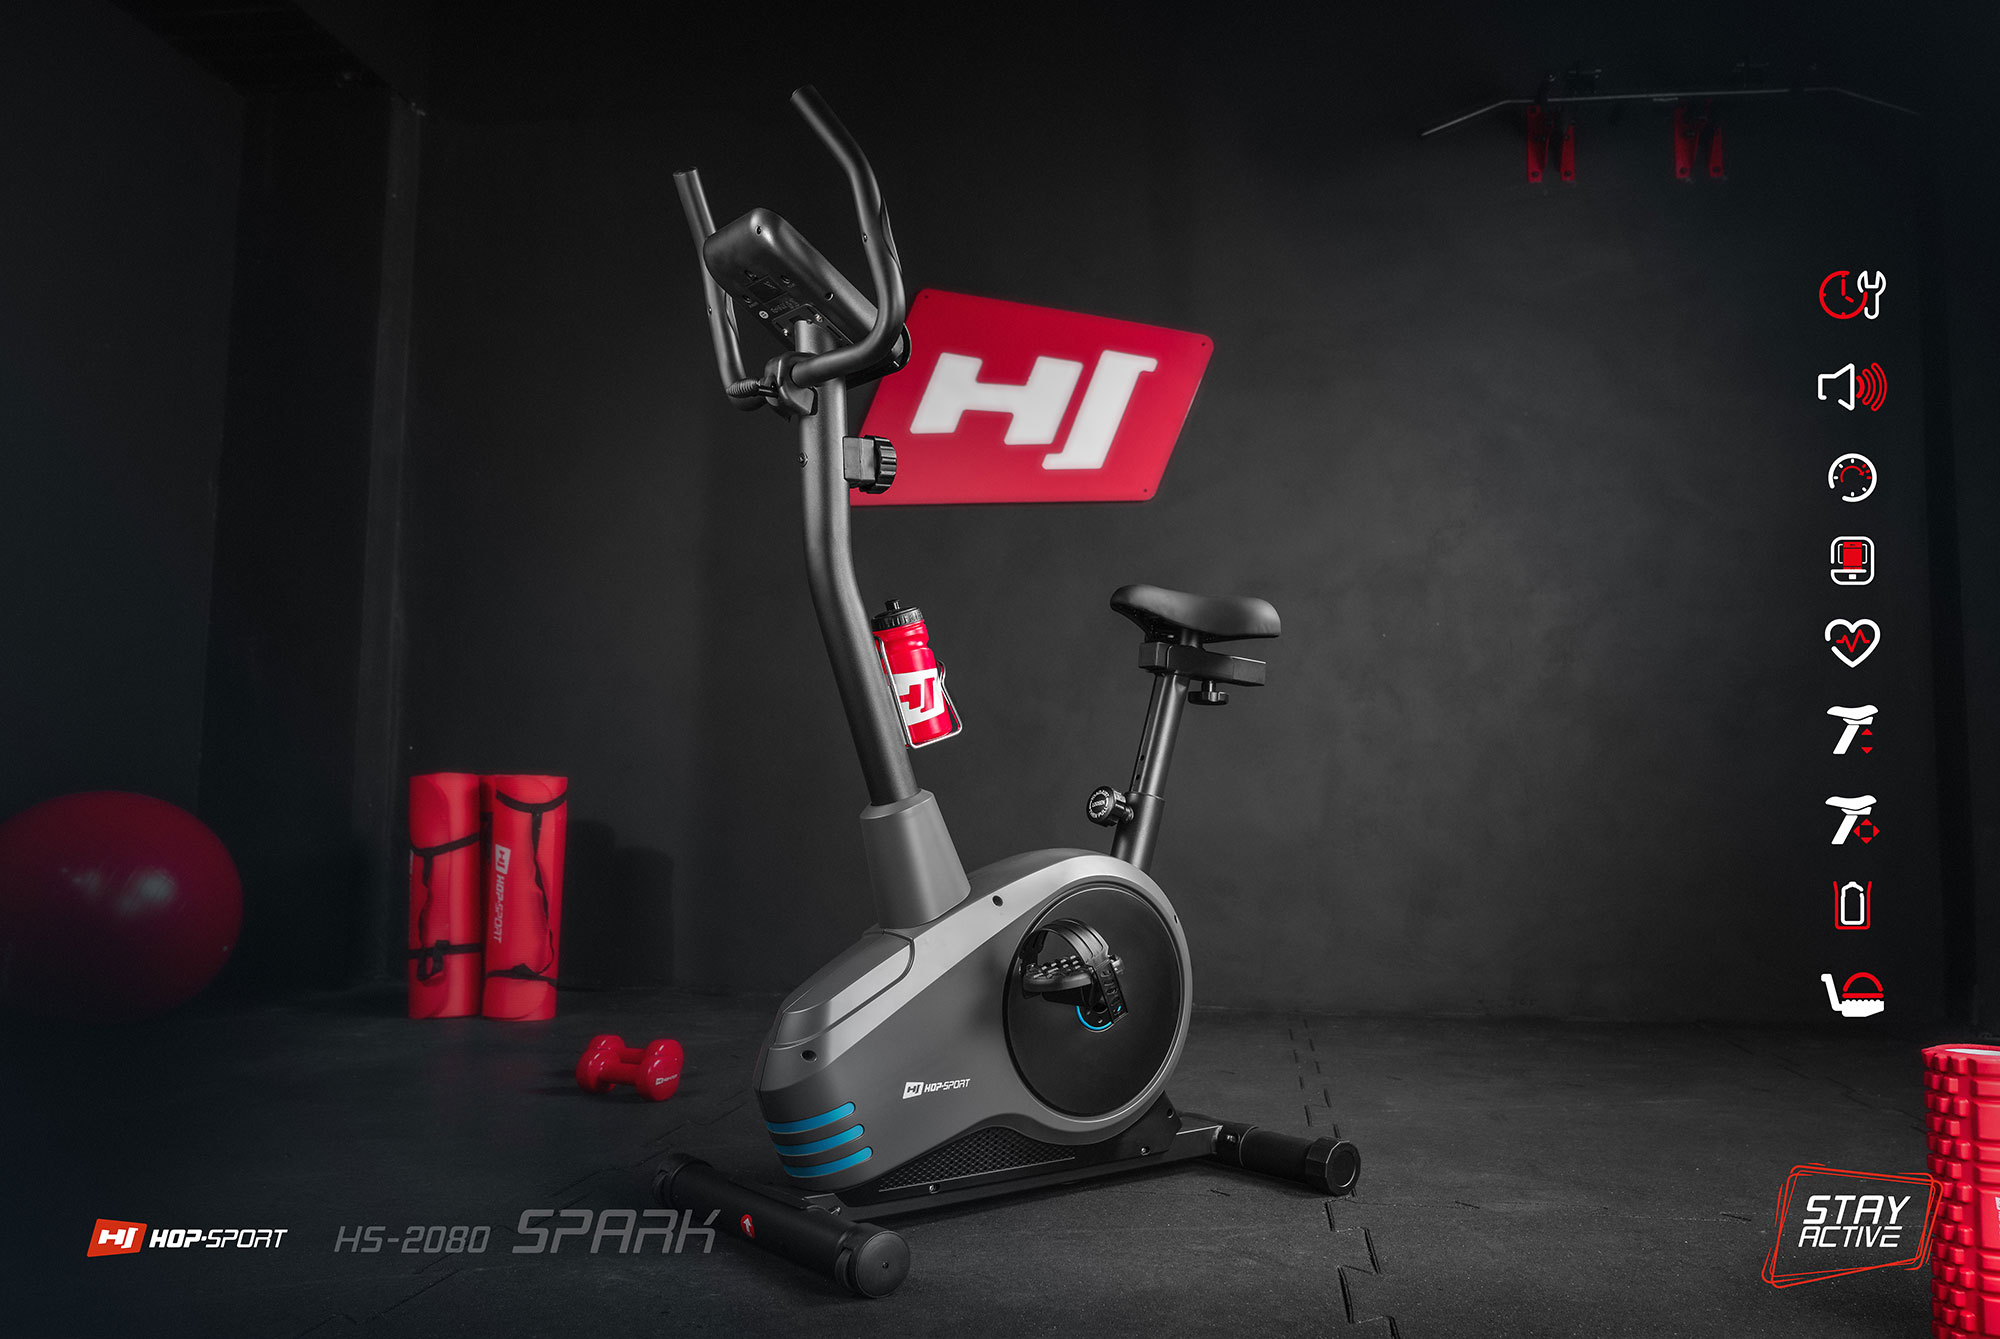 Magnetyczny rower HS-2080 Spark